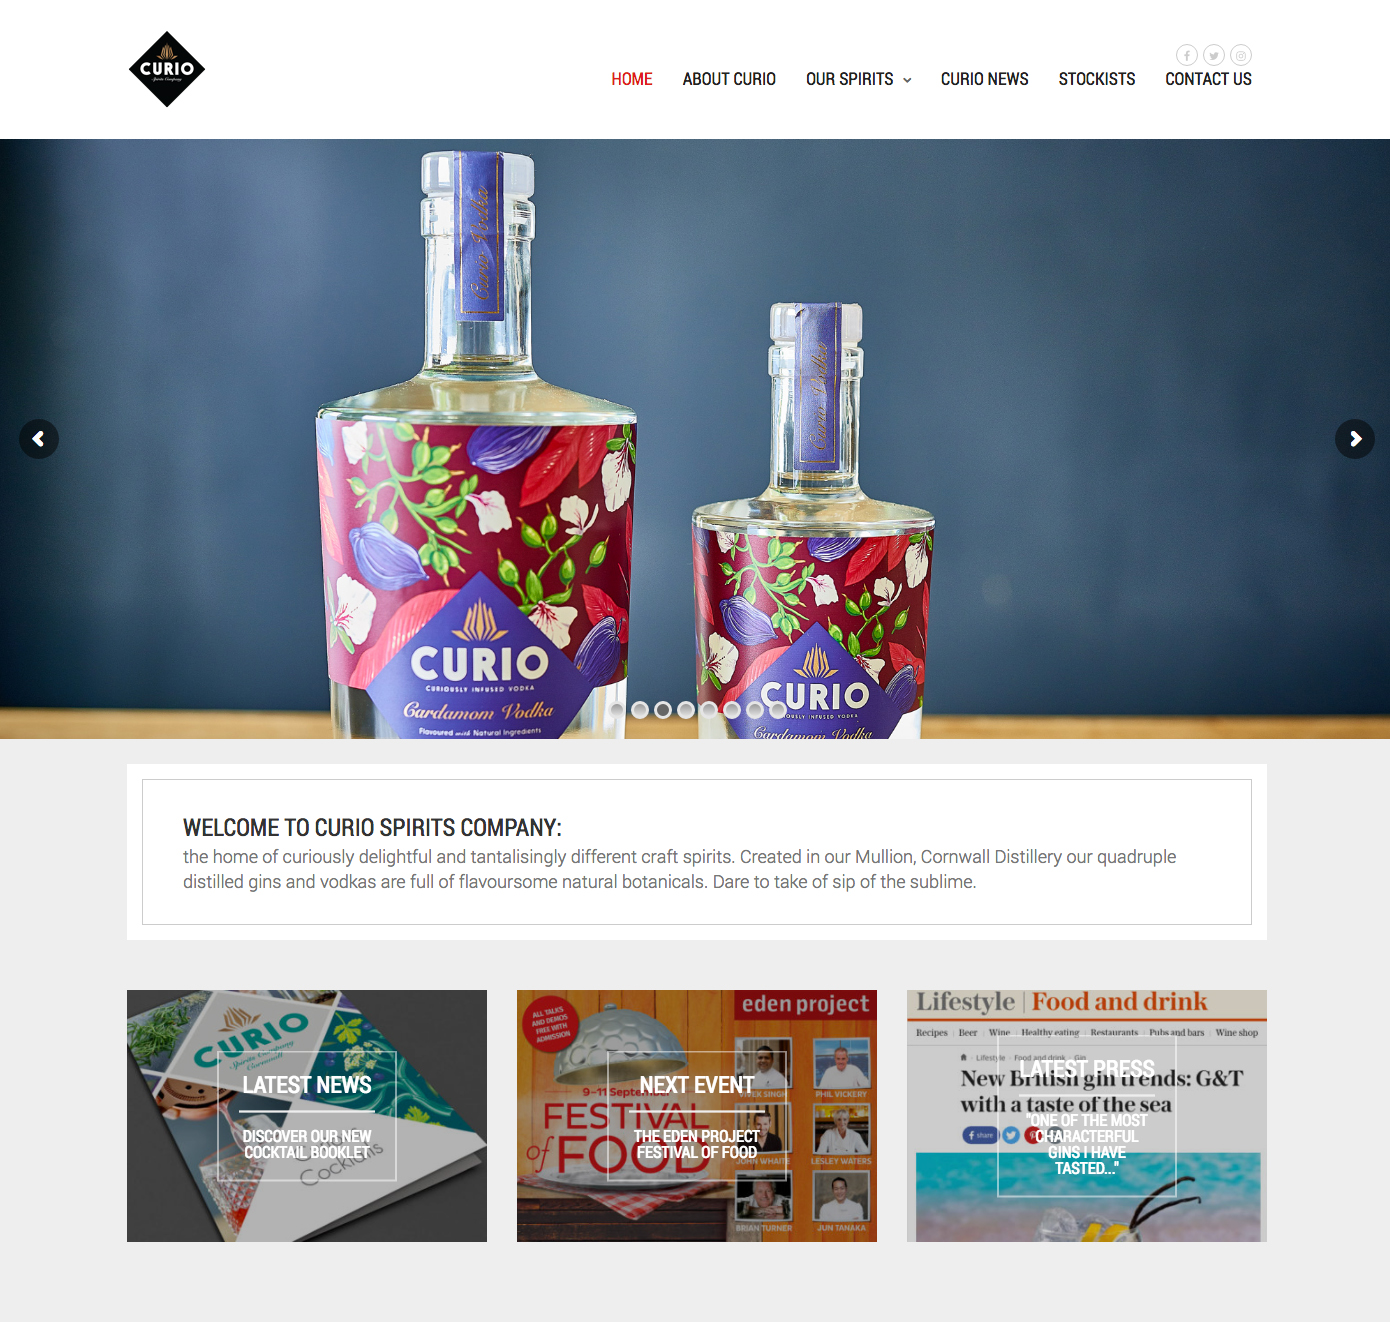 A new website for Curio Spirits